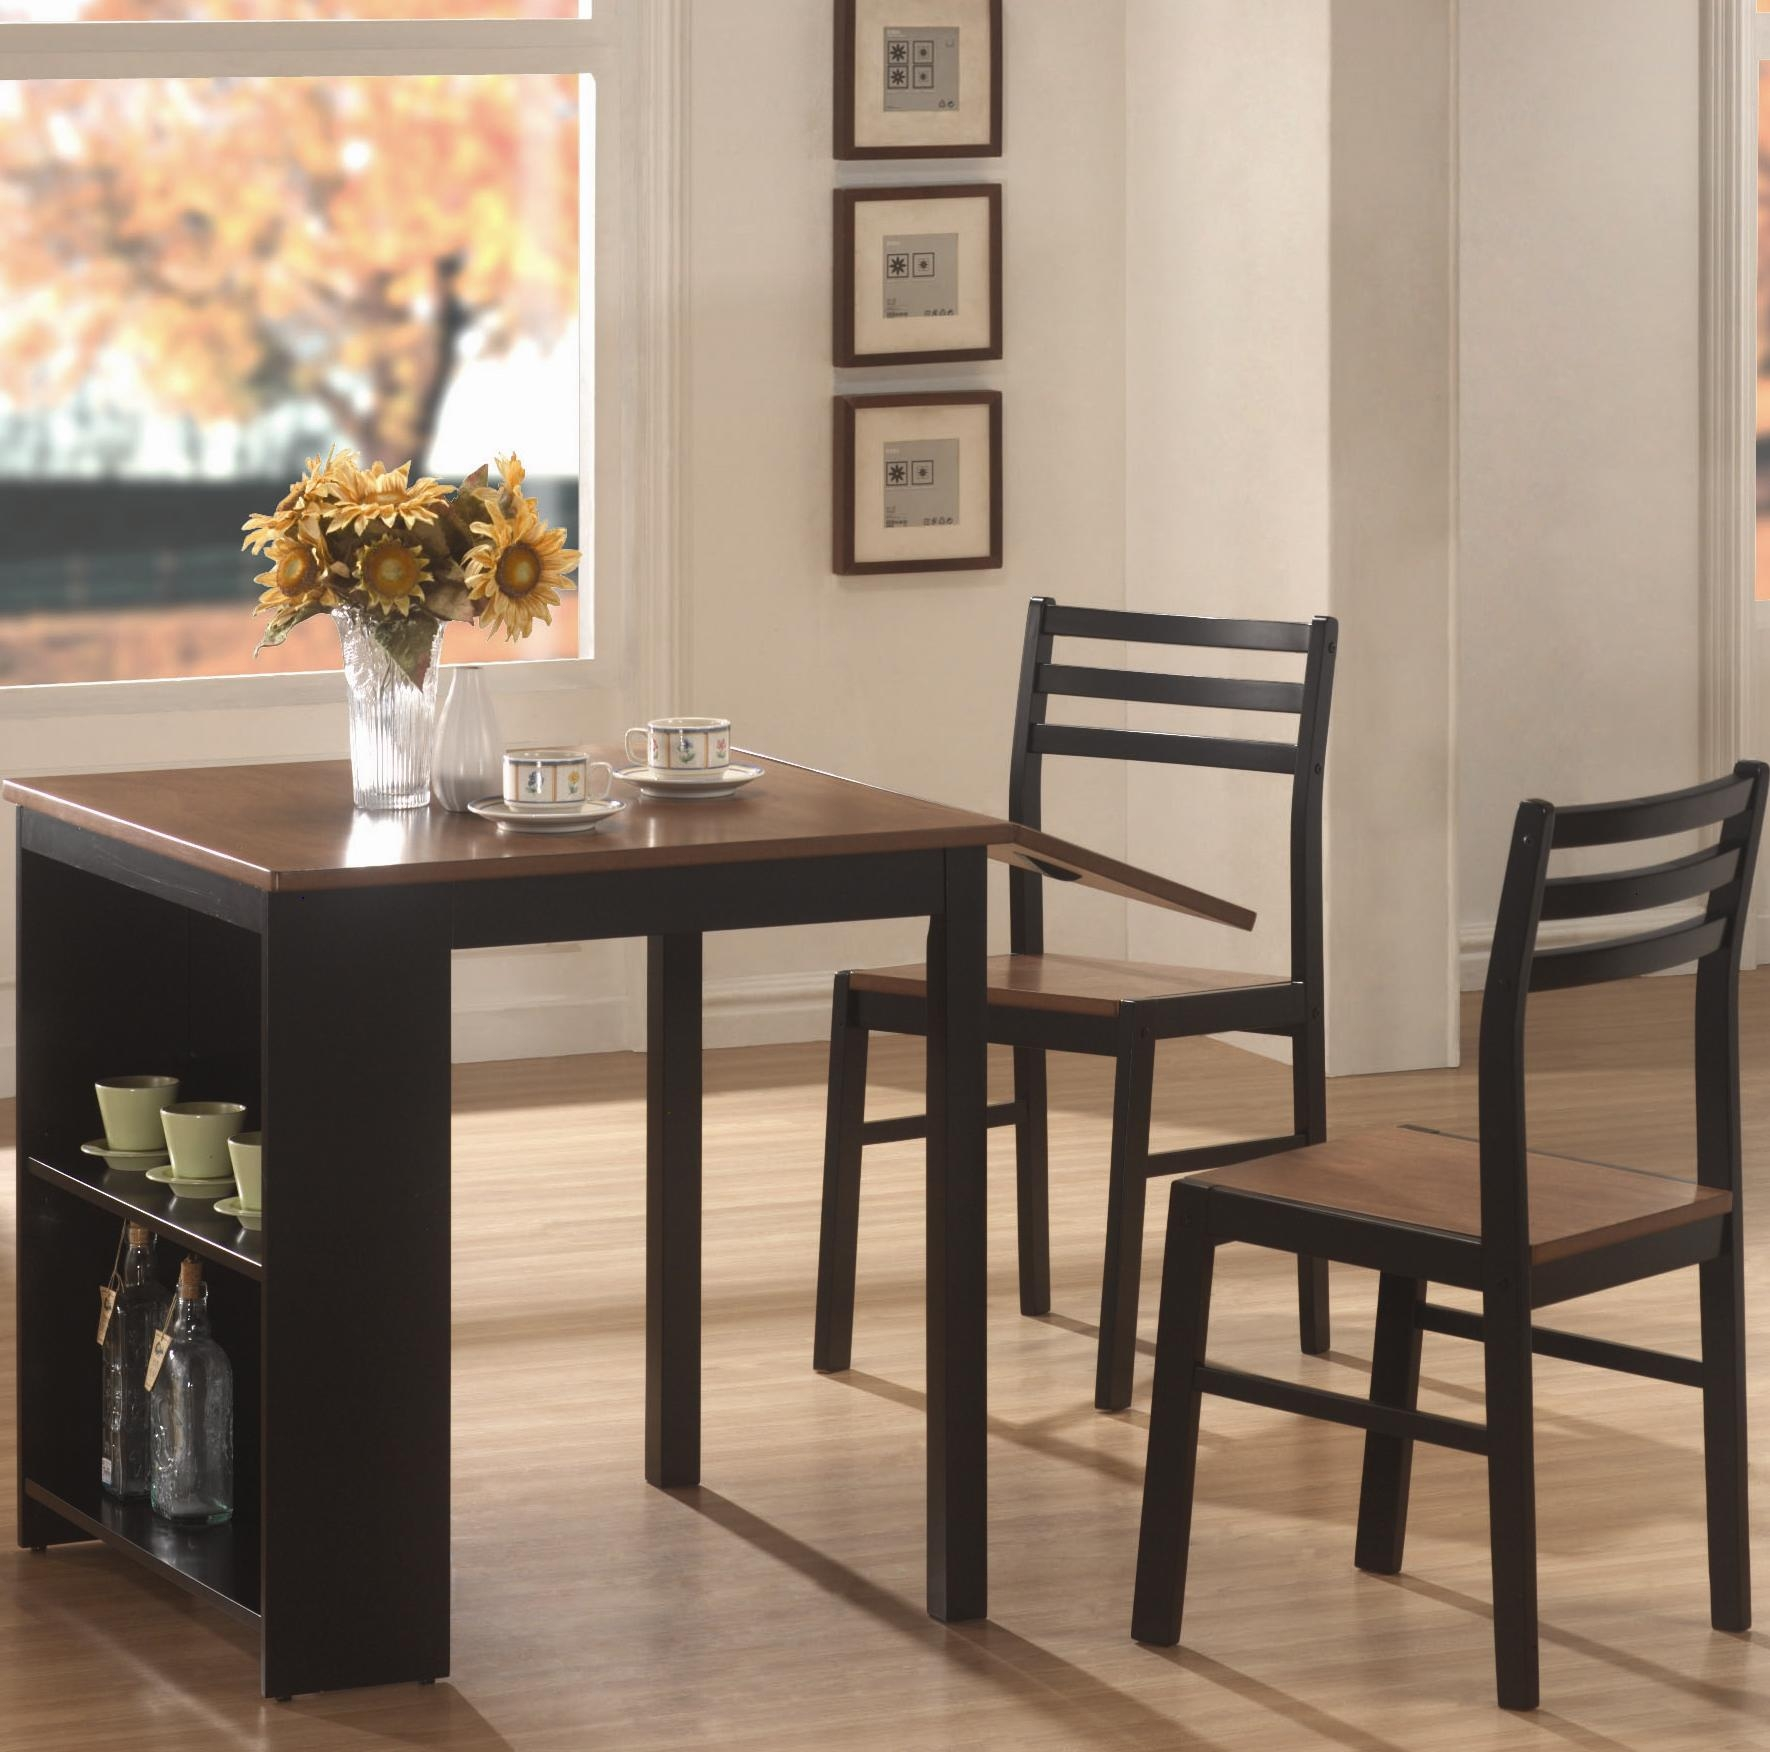 Kitchen Table And Chair Sets For Small Spaces